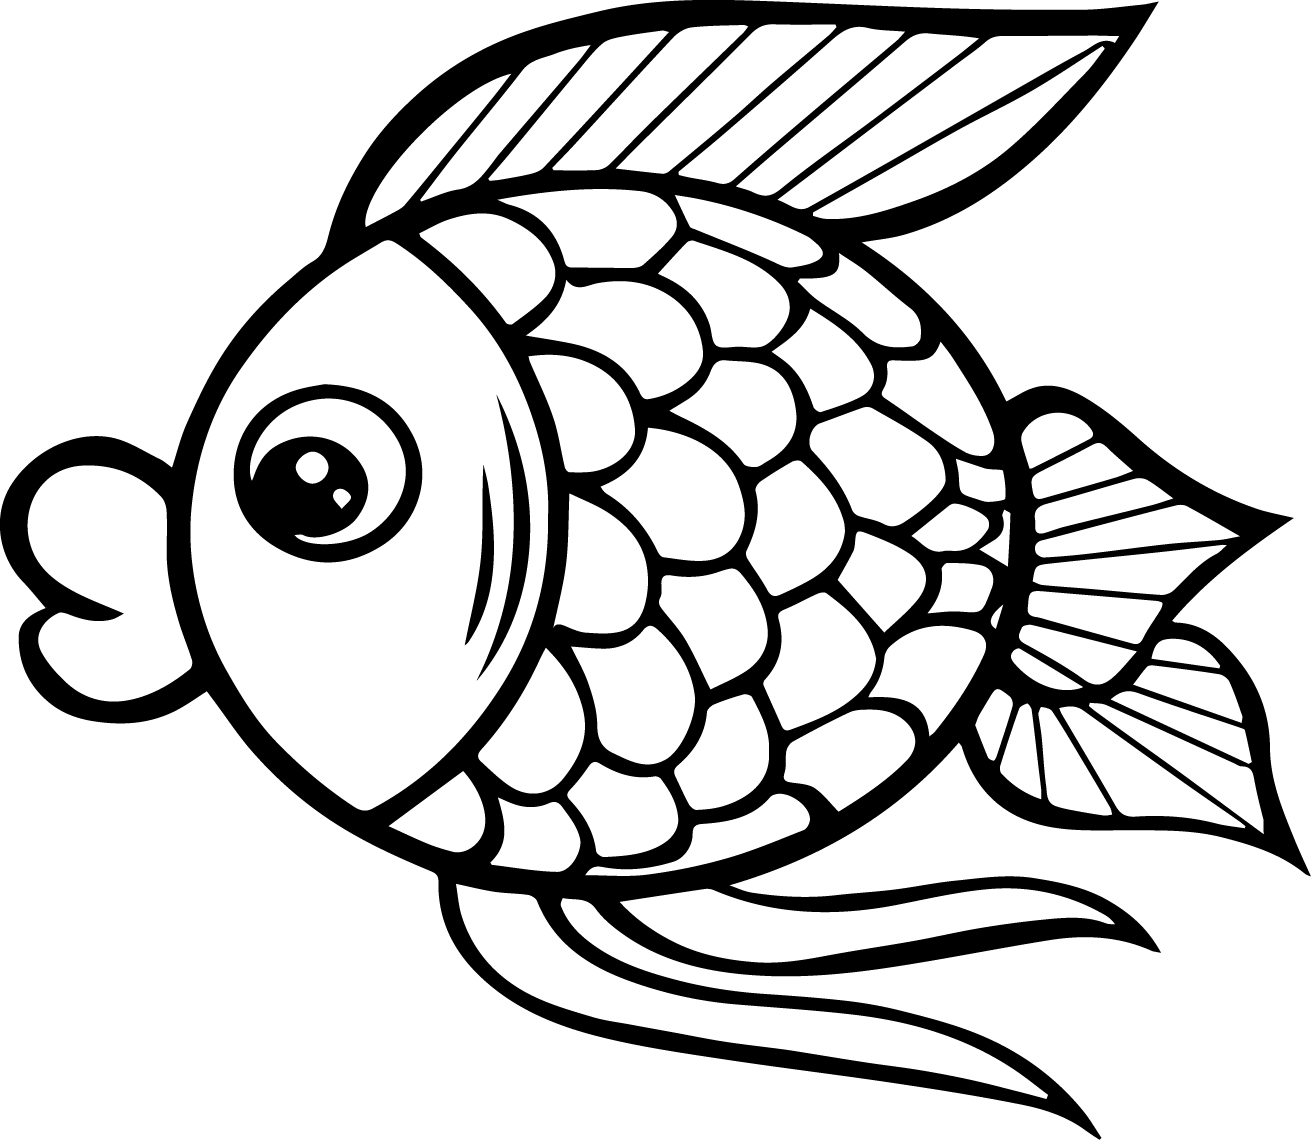 Printable Fish Coloring Pages At Getdrawings Com Free For